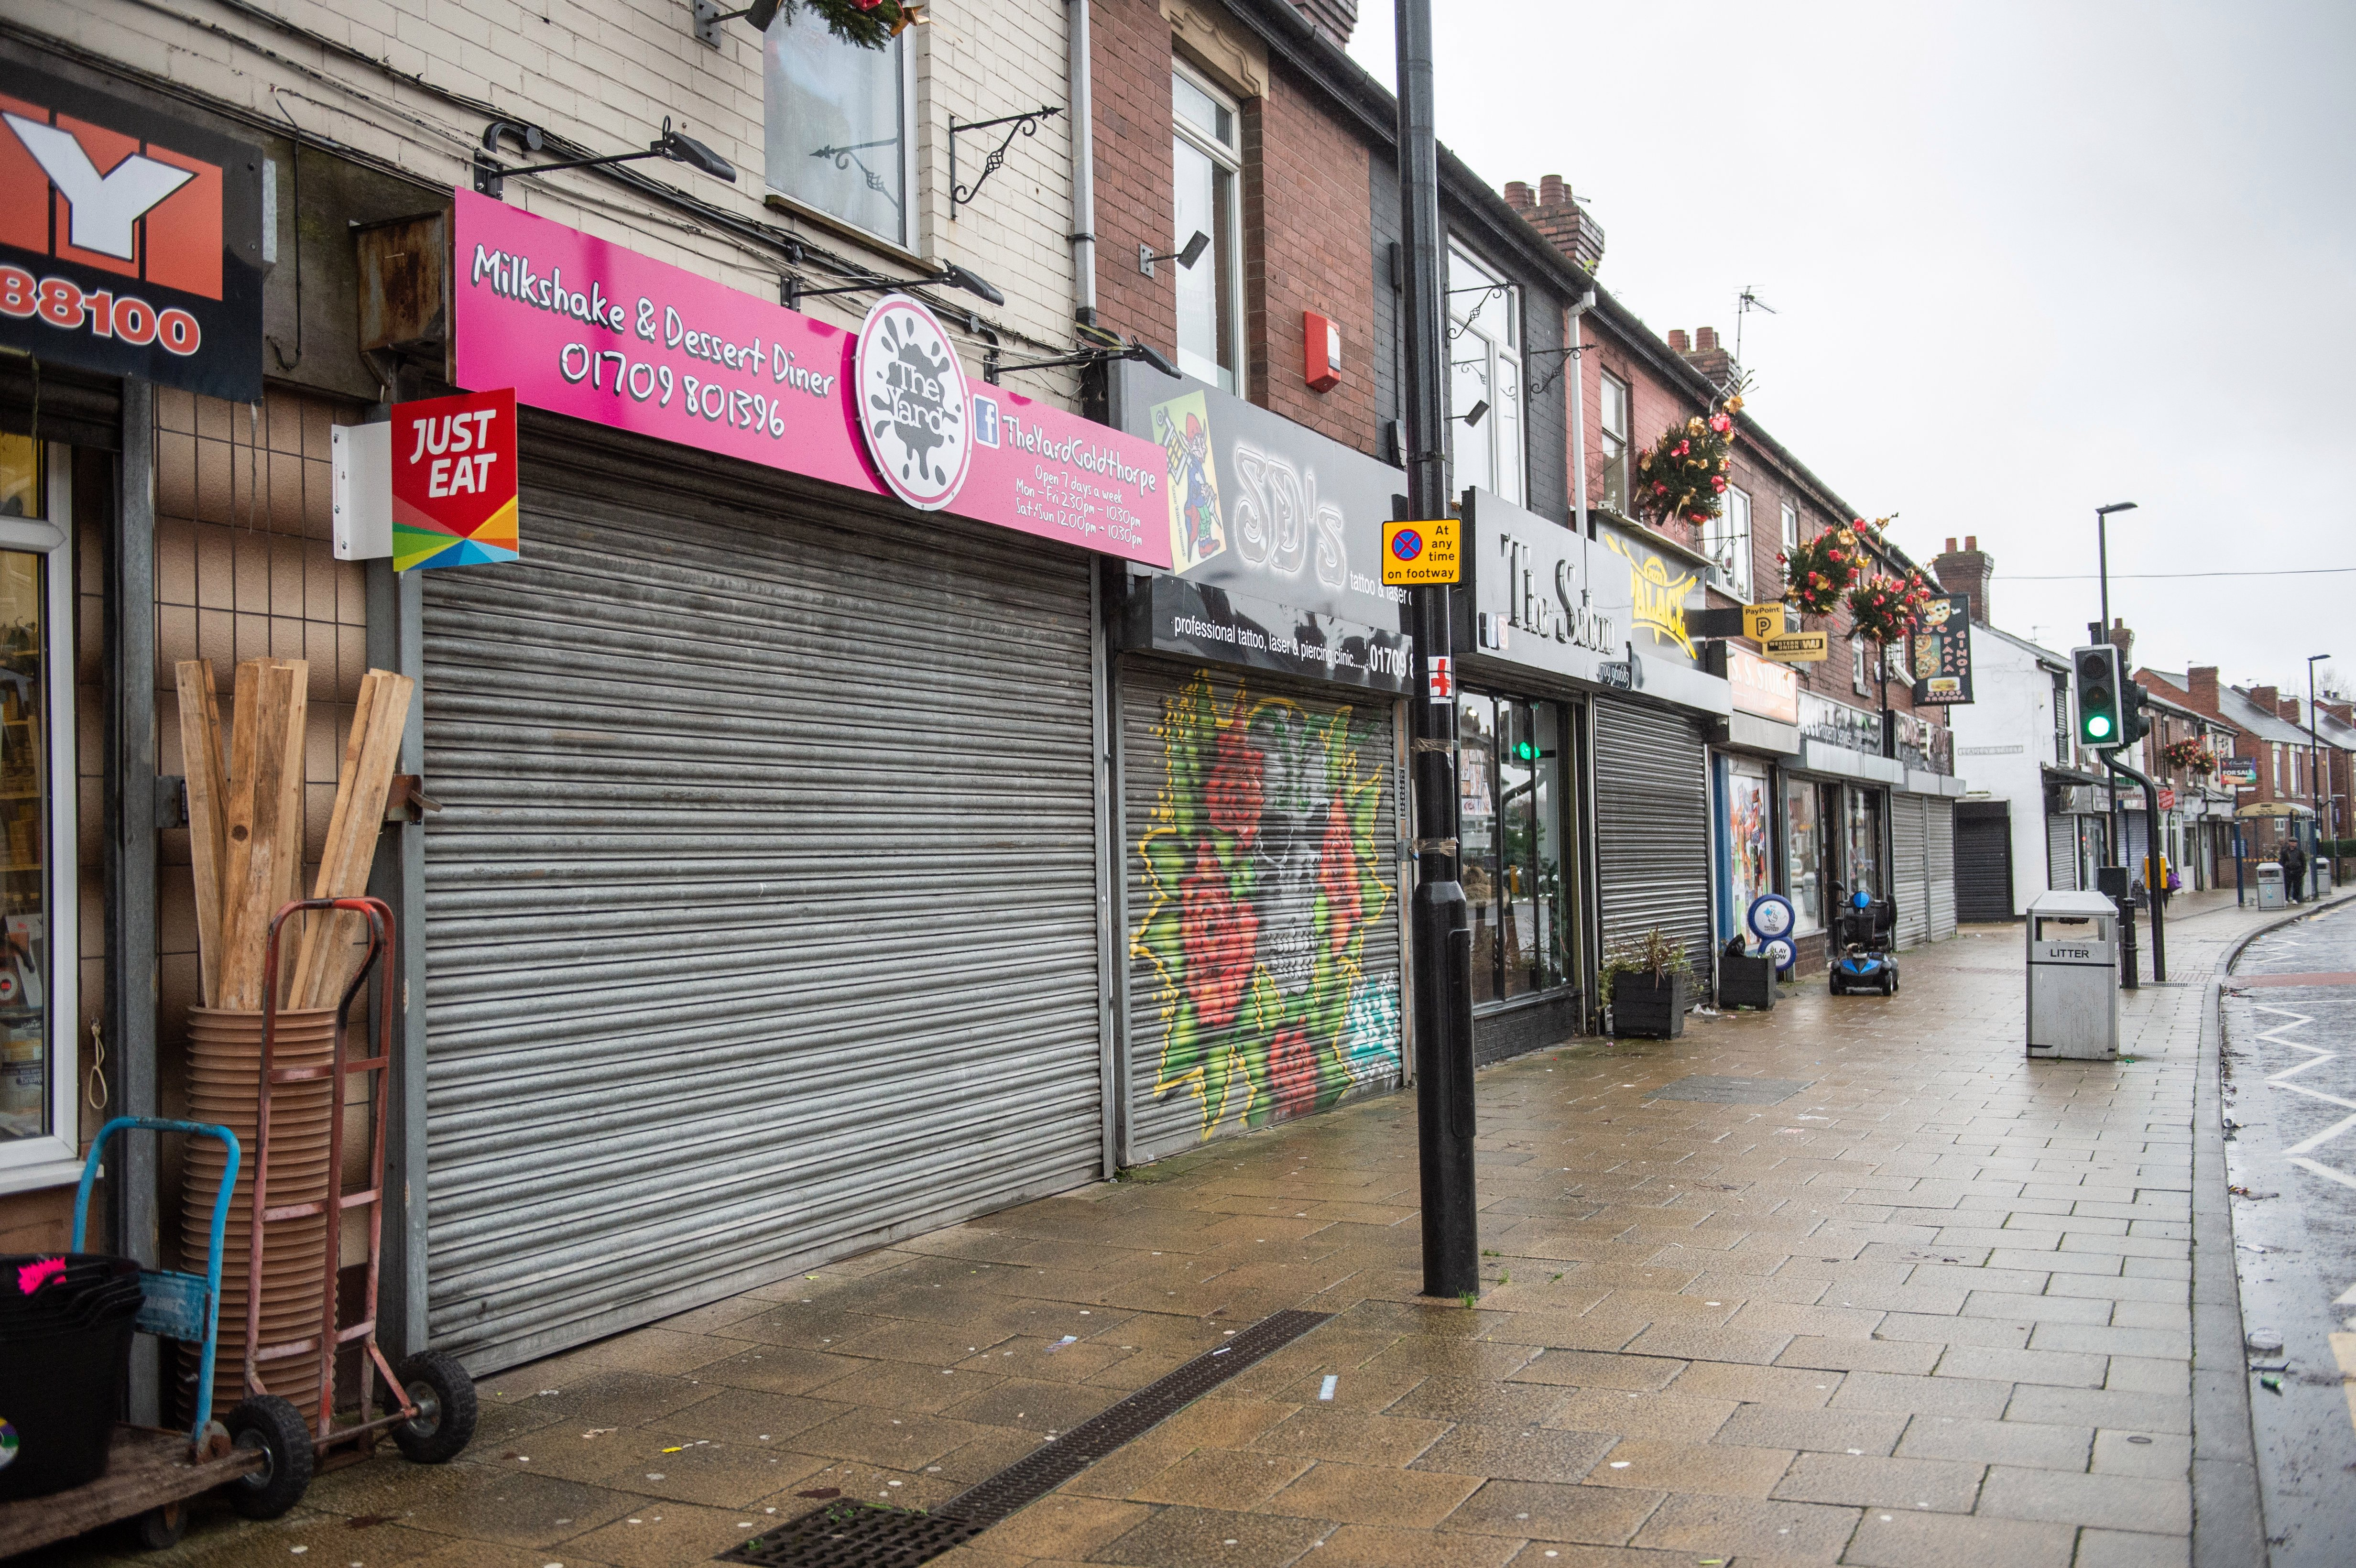 Just nine miles away in the decaying and deserted village high street of Goldthorpe, South Yorks, serves as a stark reminder of how online shopping is killing the UK's high streets